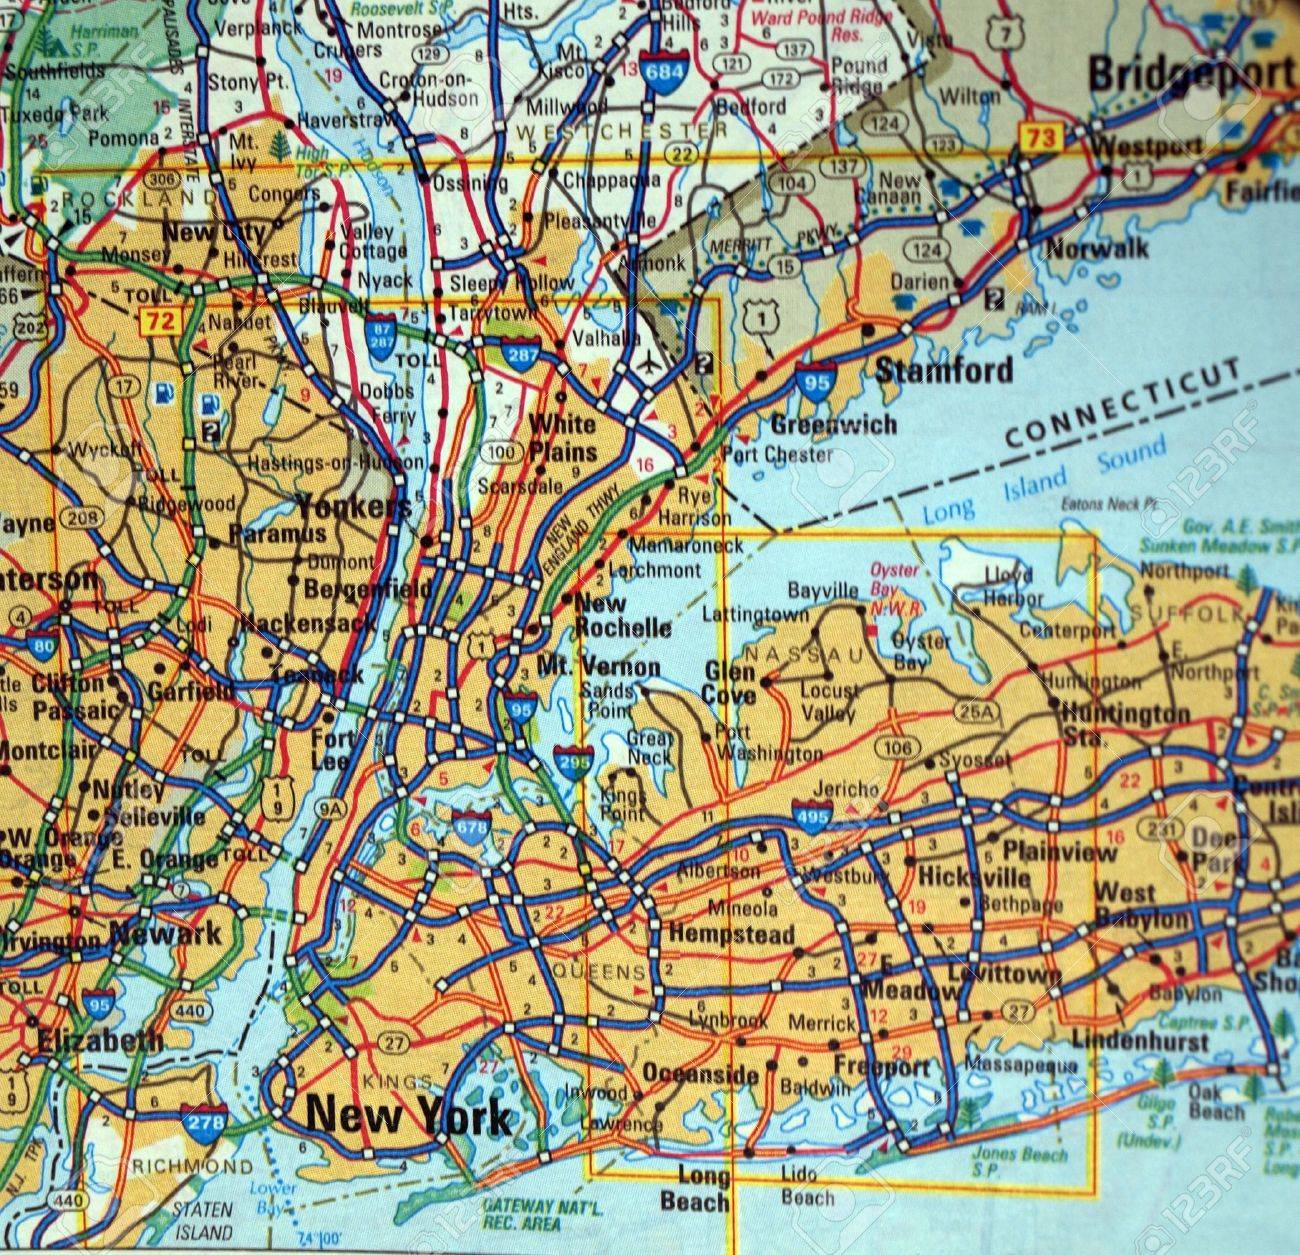 Httpspreviewsrfcomimagestdoestdoes - Road map of new york state